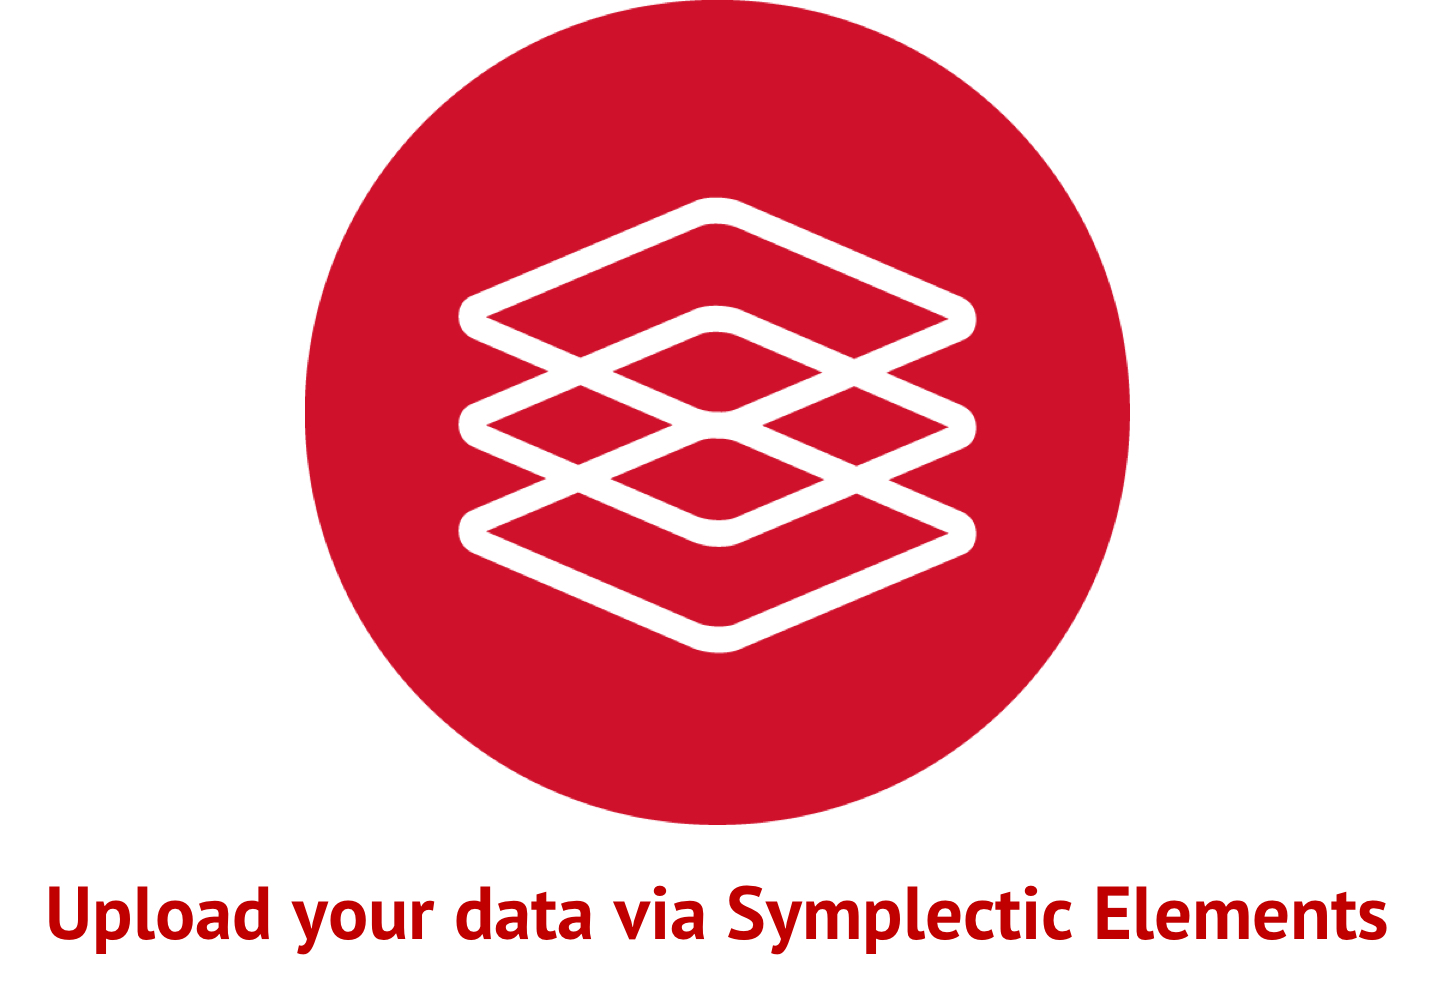 Upload your data via Symplectic Elements